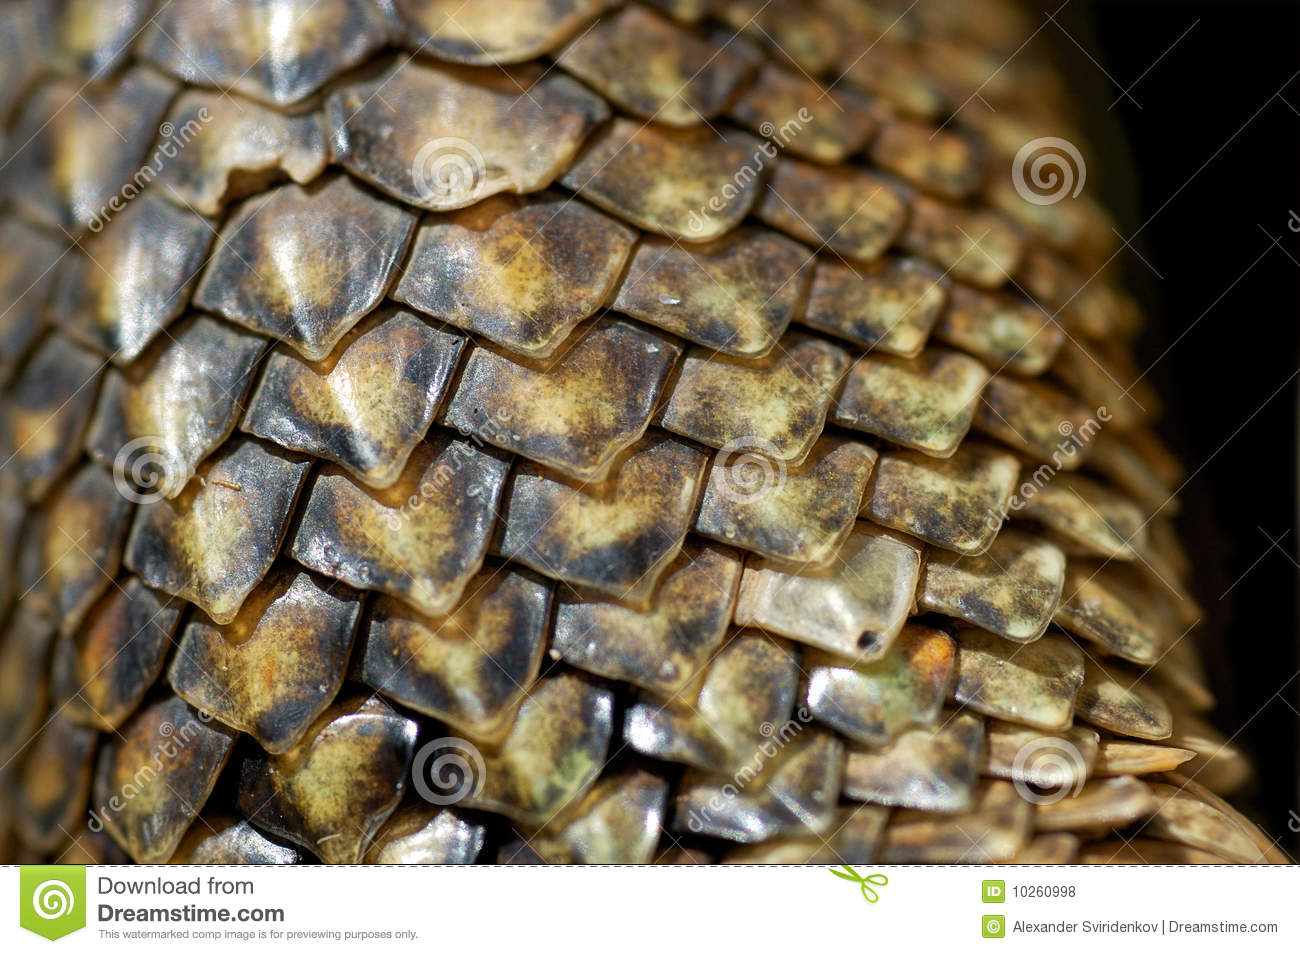 Iguana Scales Close-up Royalty Free Stock Photos - Image: 10260998